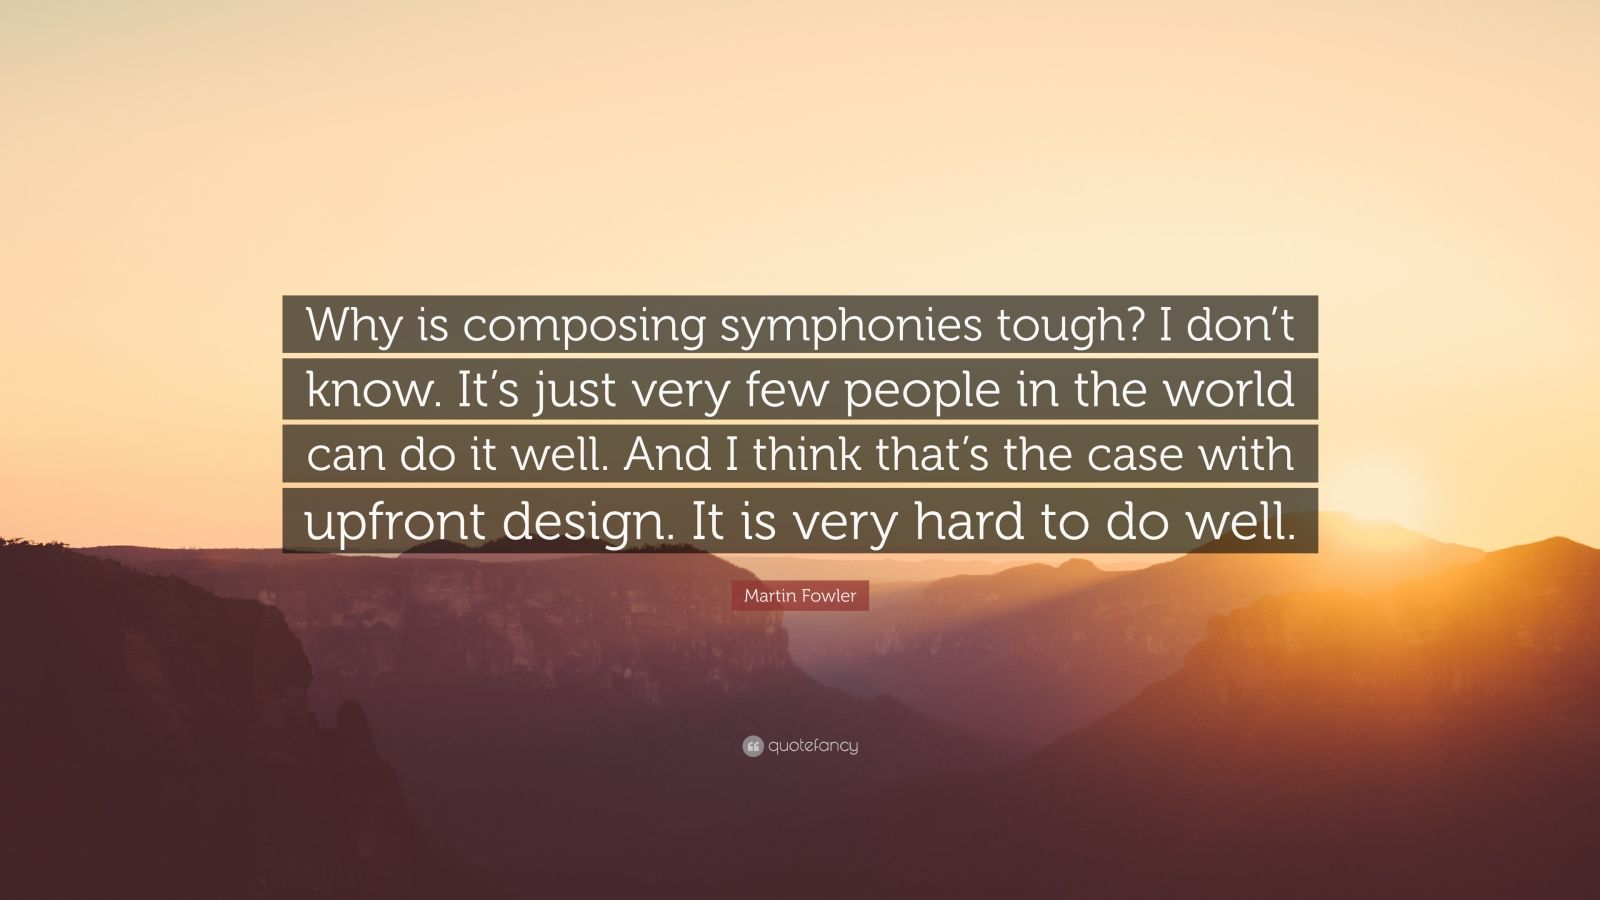 "Martin Fowler Quote: ""Why is composing symphonies tough? I don't know. It's just very few people in the world can do it well. And I think that's the case with upfront design. It is very hard to do well."""